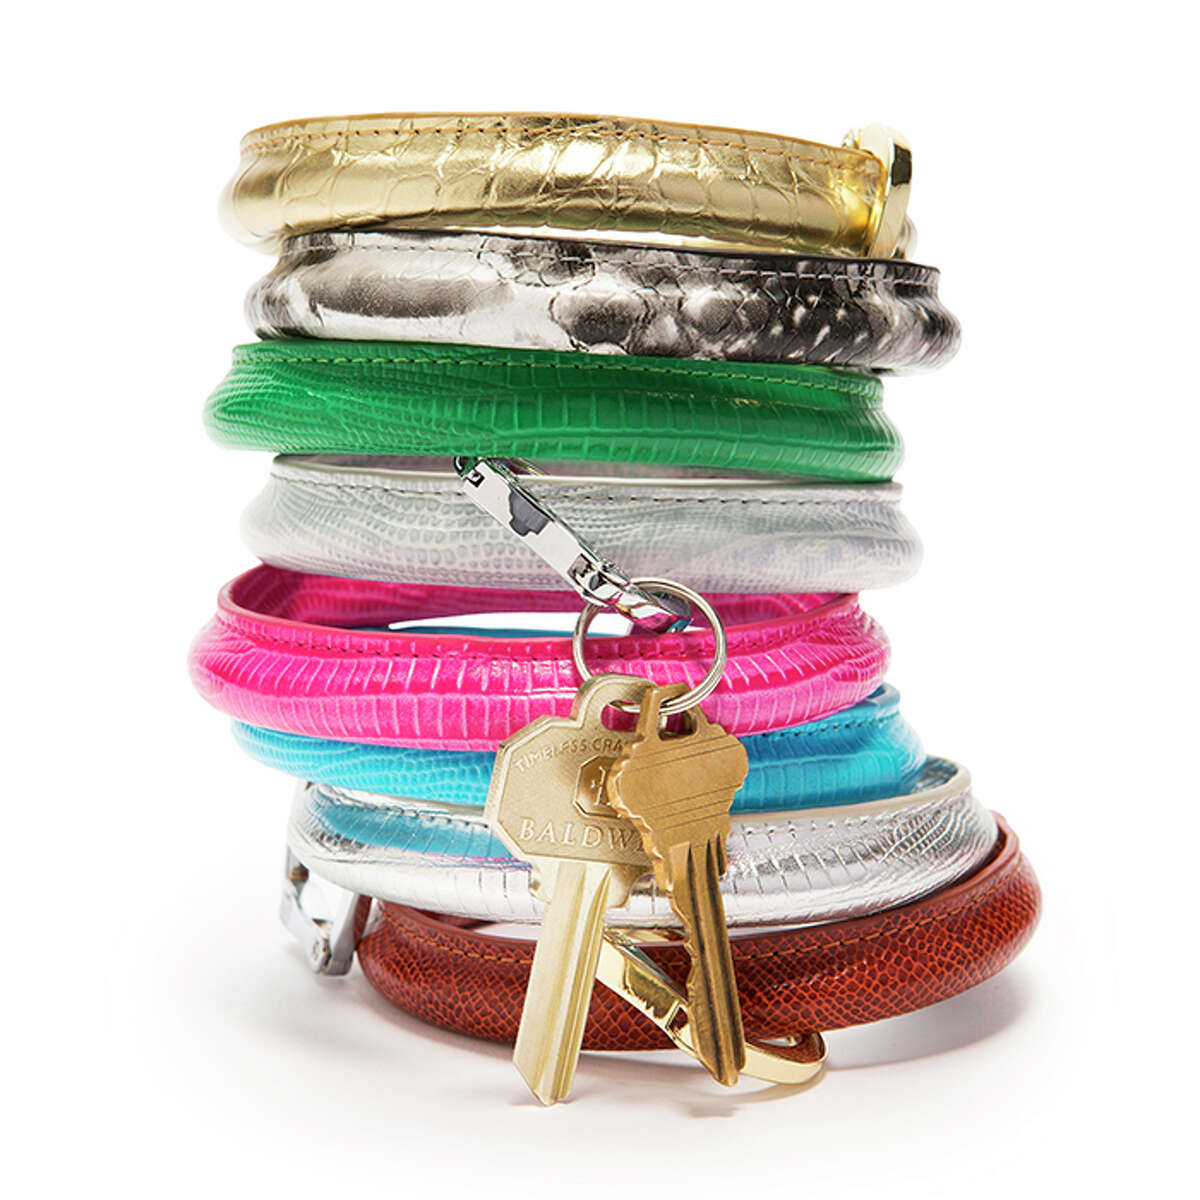 O-VENTURE KEY RING, $28-$55 The O-Venture key ring is the answer for any woman who's thought,